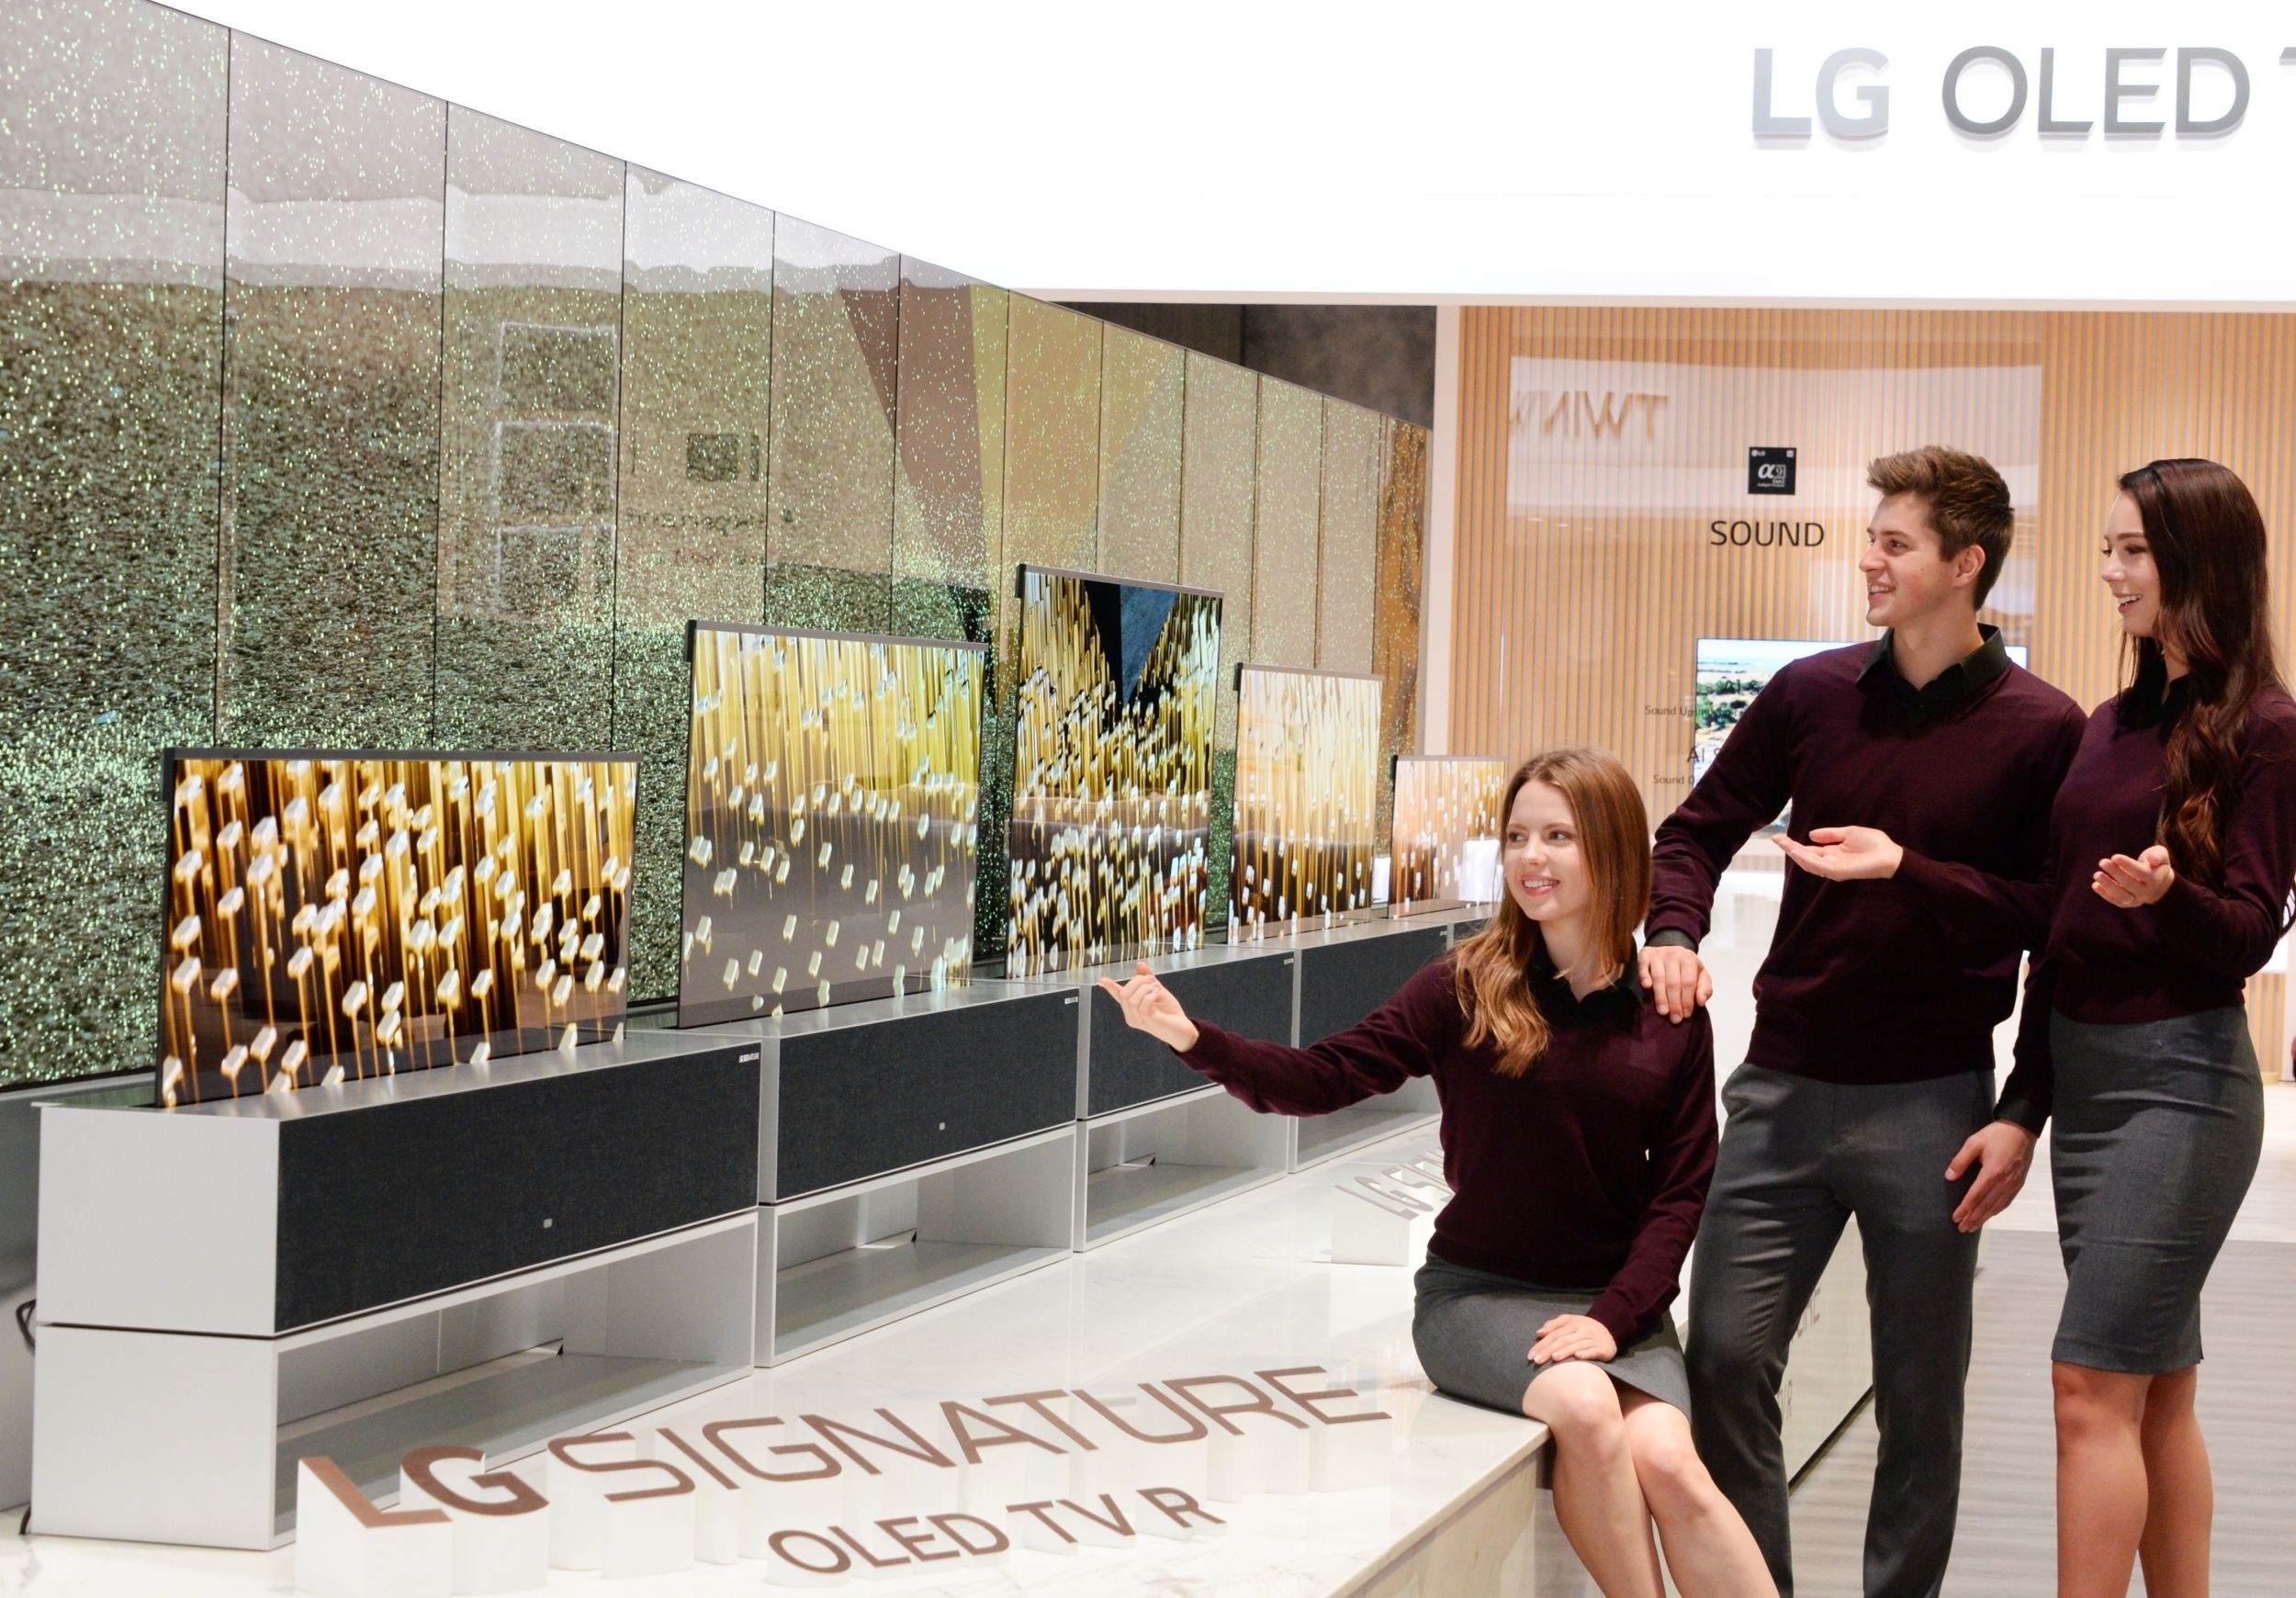 Three people are looking at LG OLED TV R on display at LG's CES 2019 booth